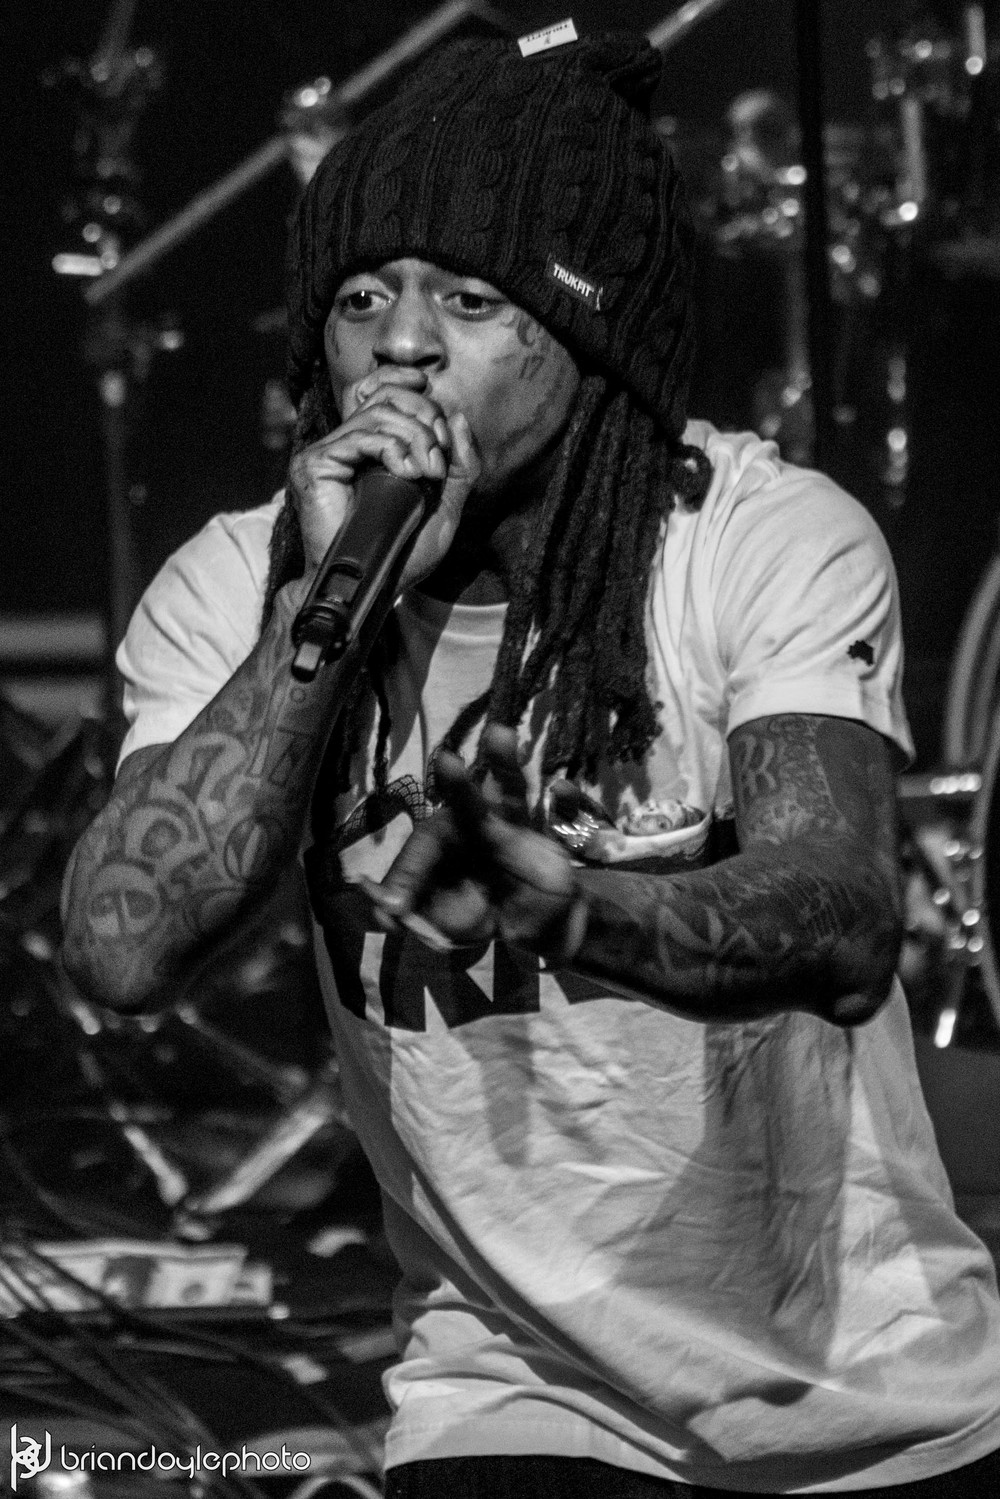 Lil Wayne, Juicy J, Two-9, Tree @ The Fonda 25.11.2014-38.jpg